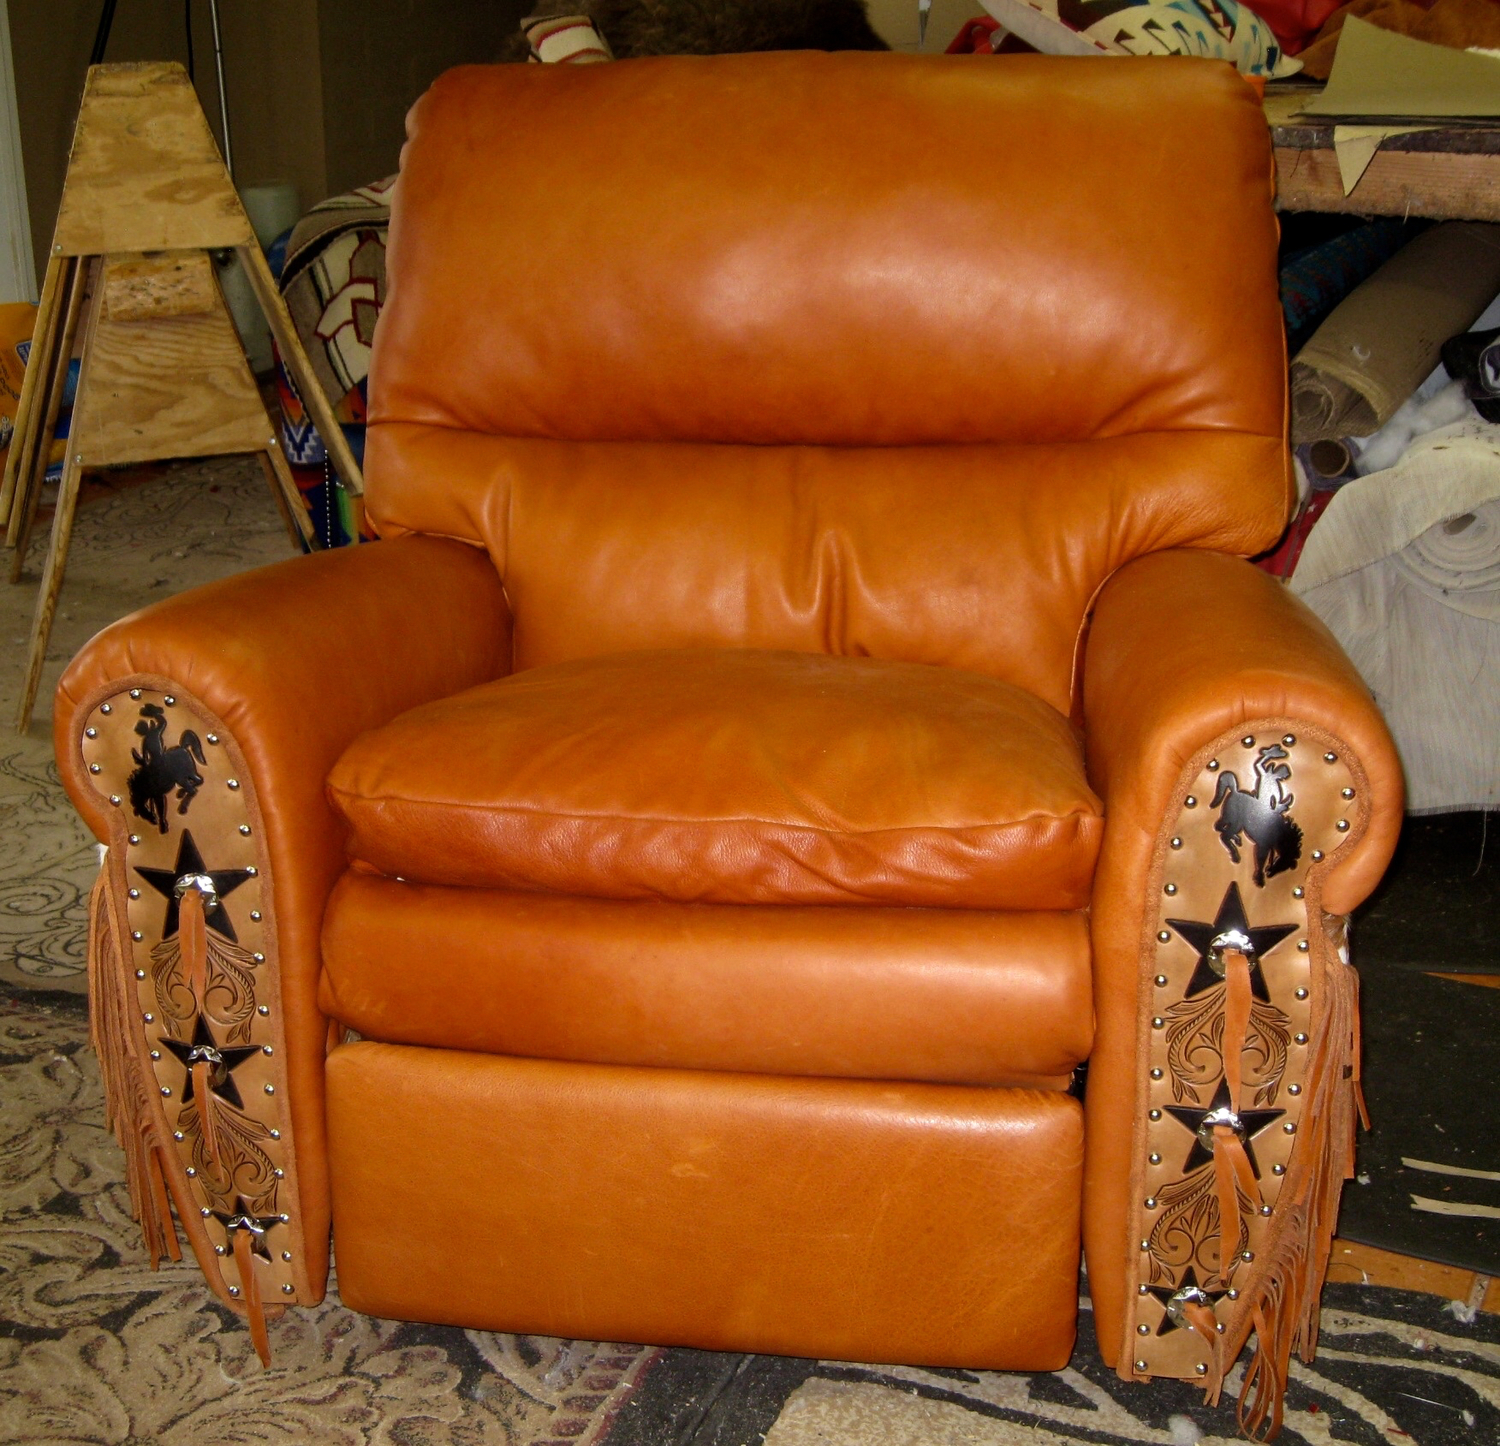 Western Chairs The Ultimate Recliner Leather And Cowhide